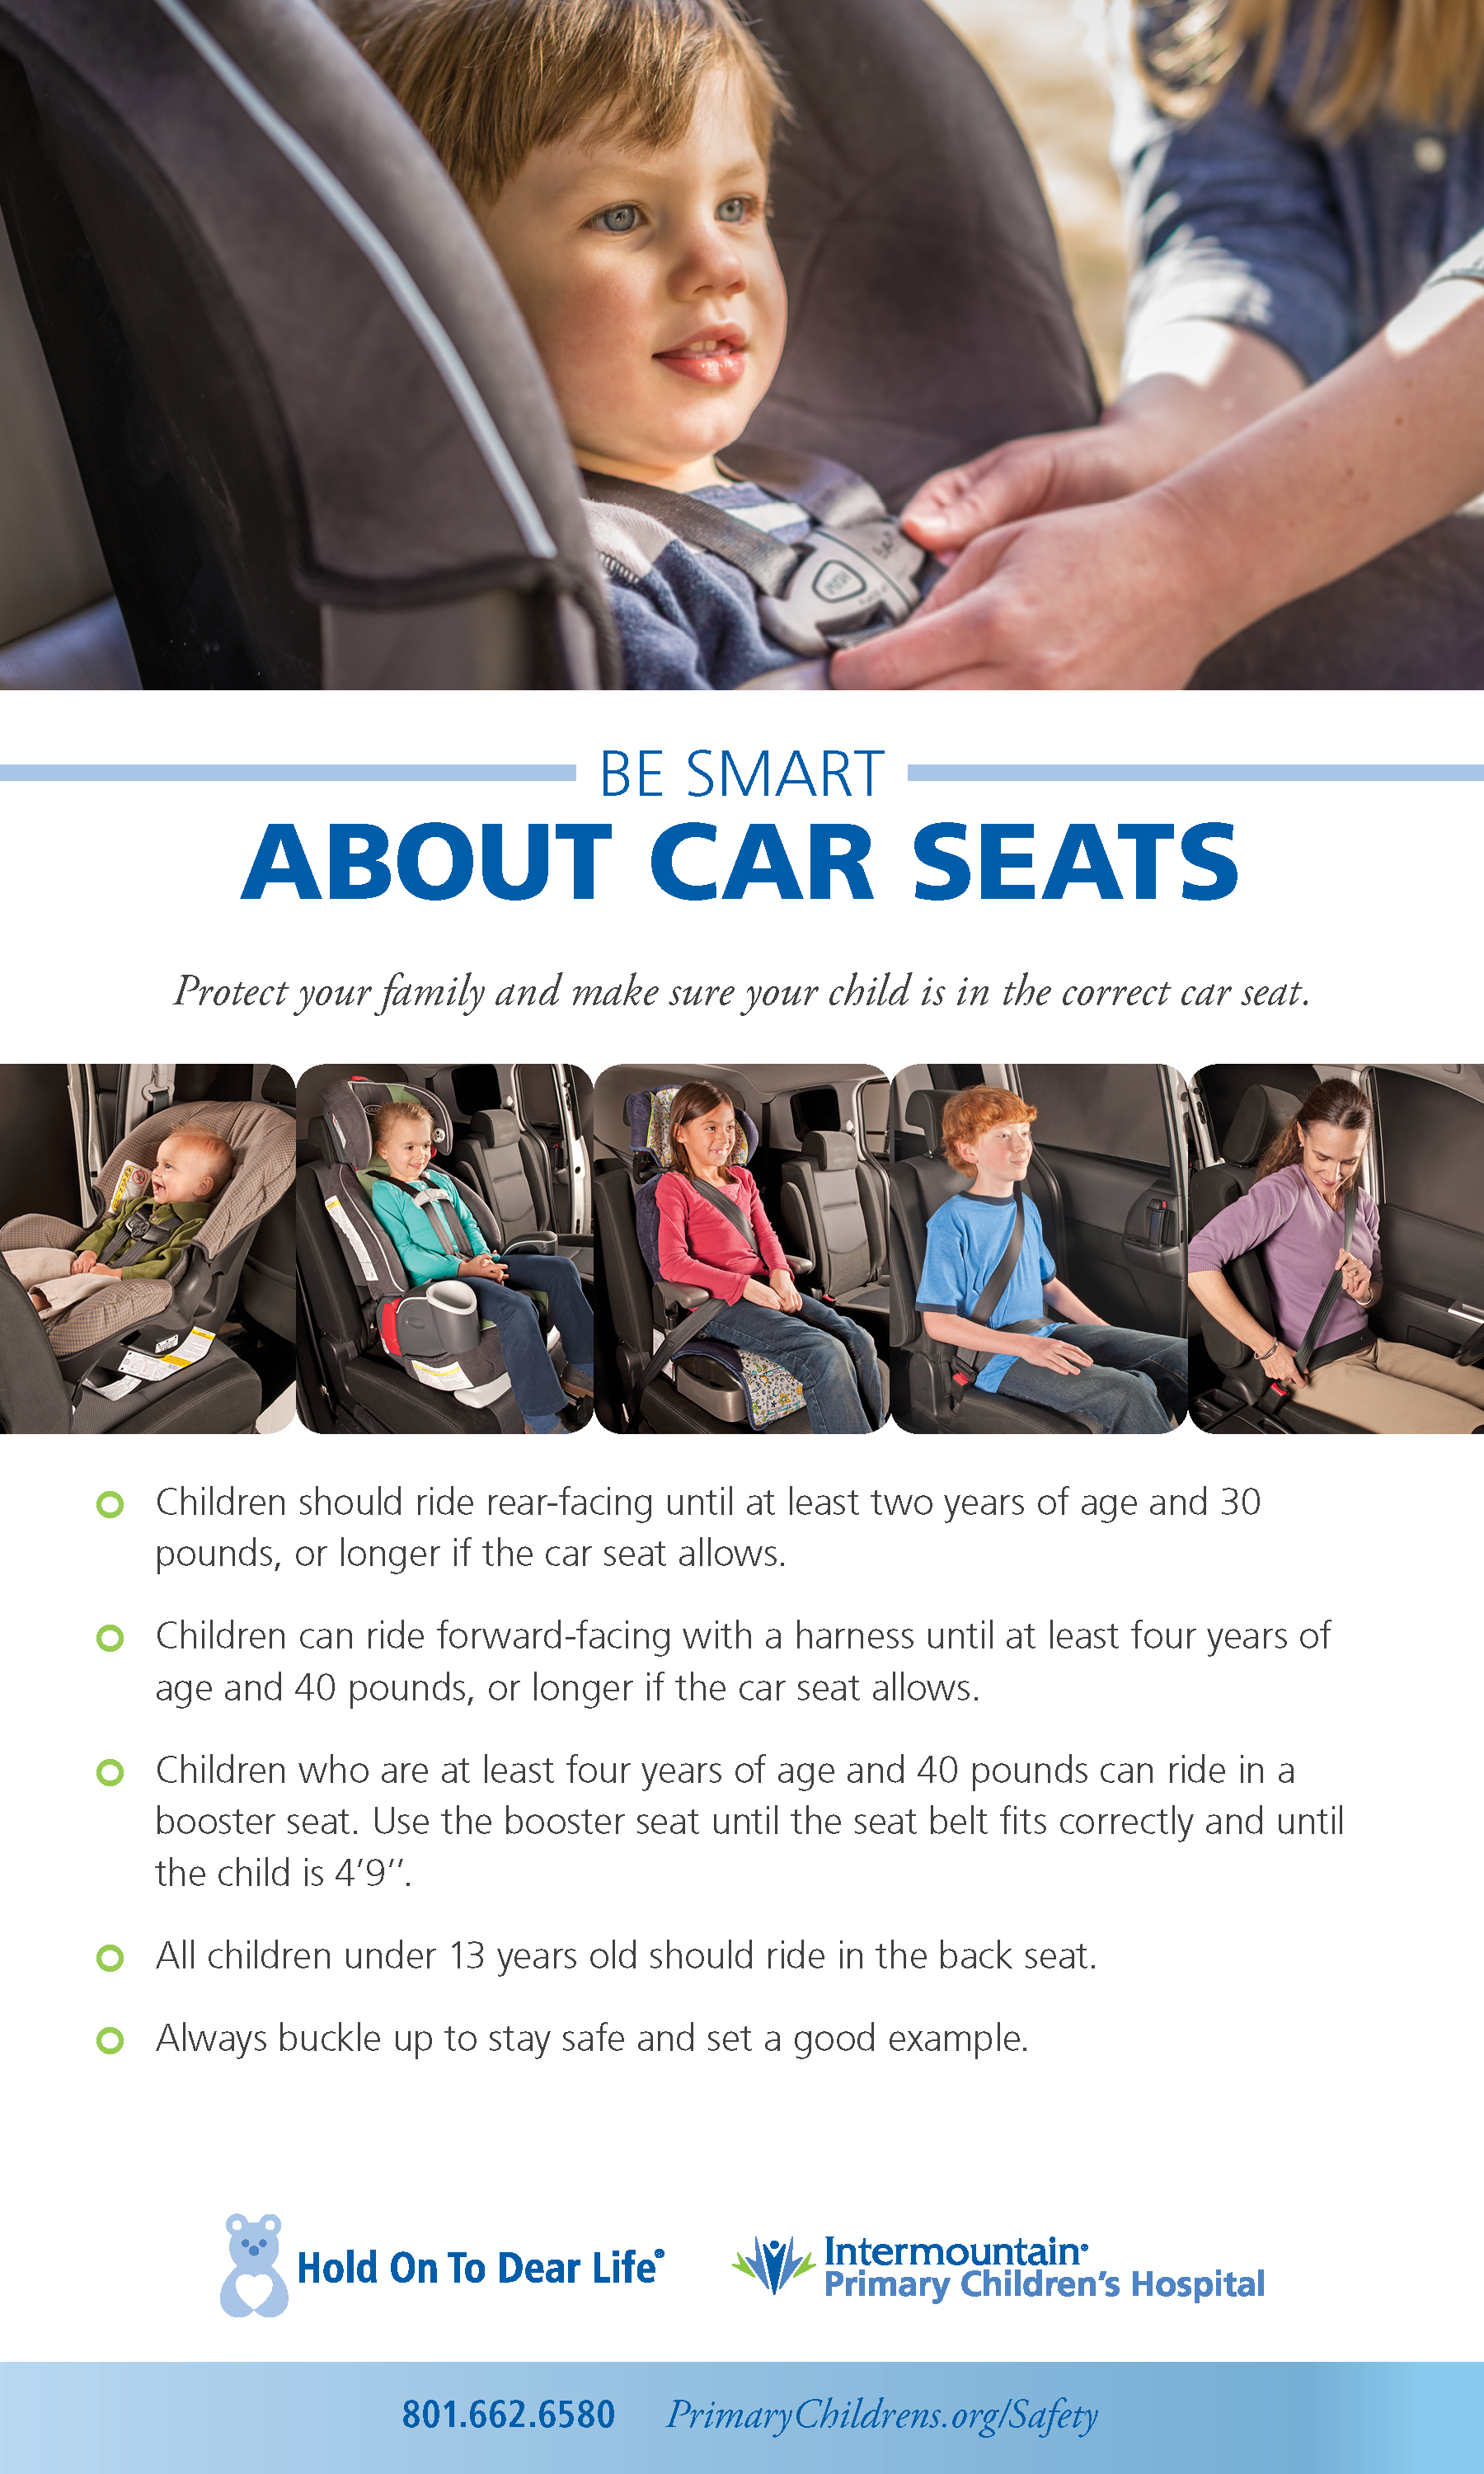 Be Smart About Car Seats